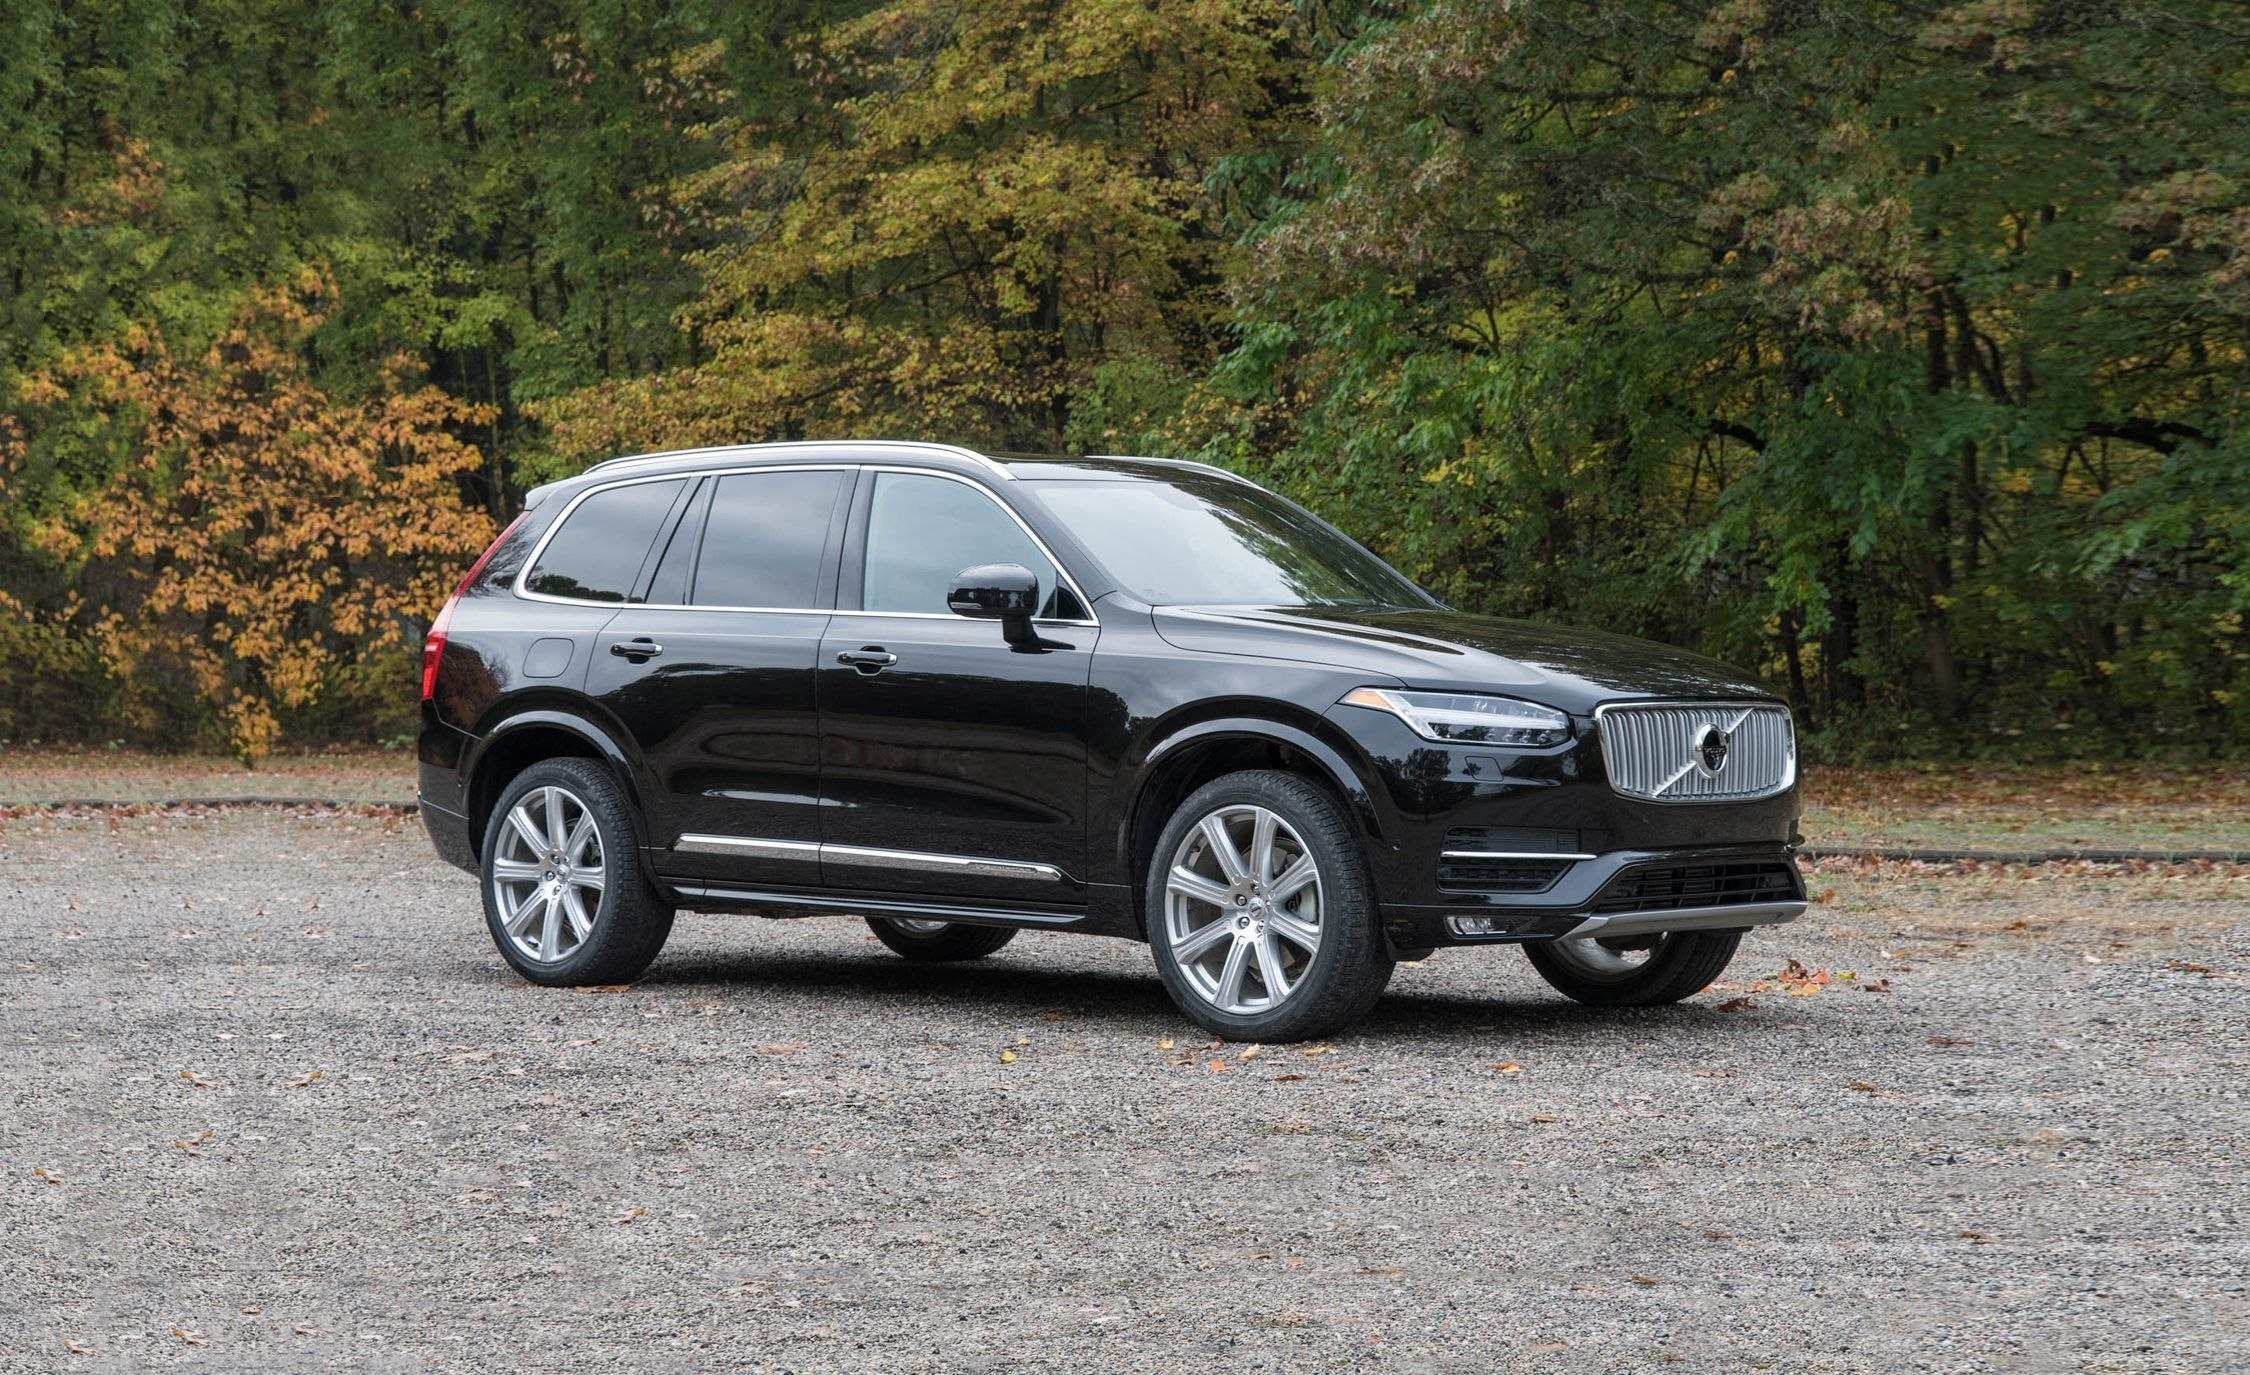 98 Gallery of Difference Between 2019 And 2020 Volvo Xc90 Price by Difference Between 2019 And 2020 Volvo Xc90